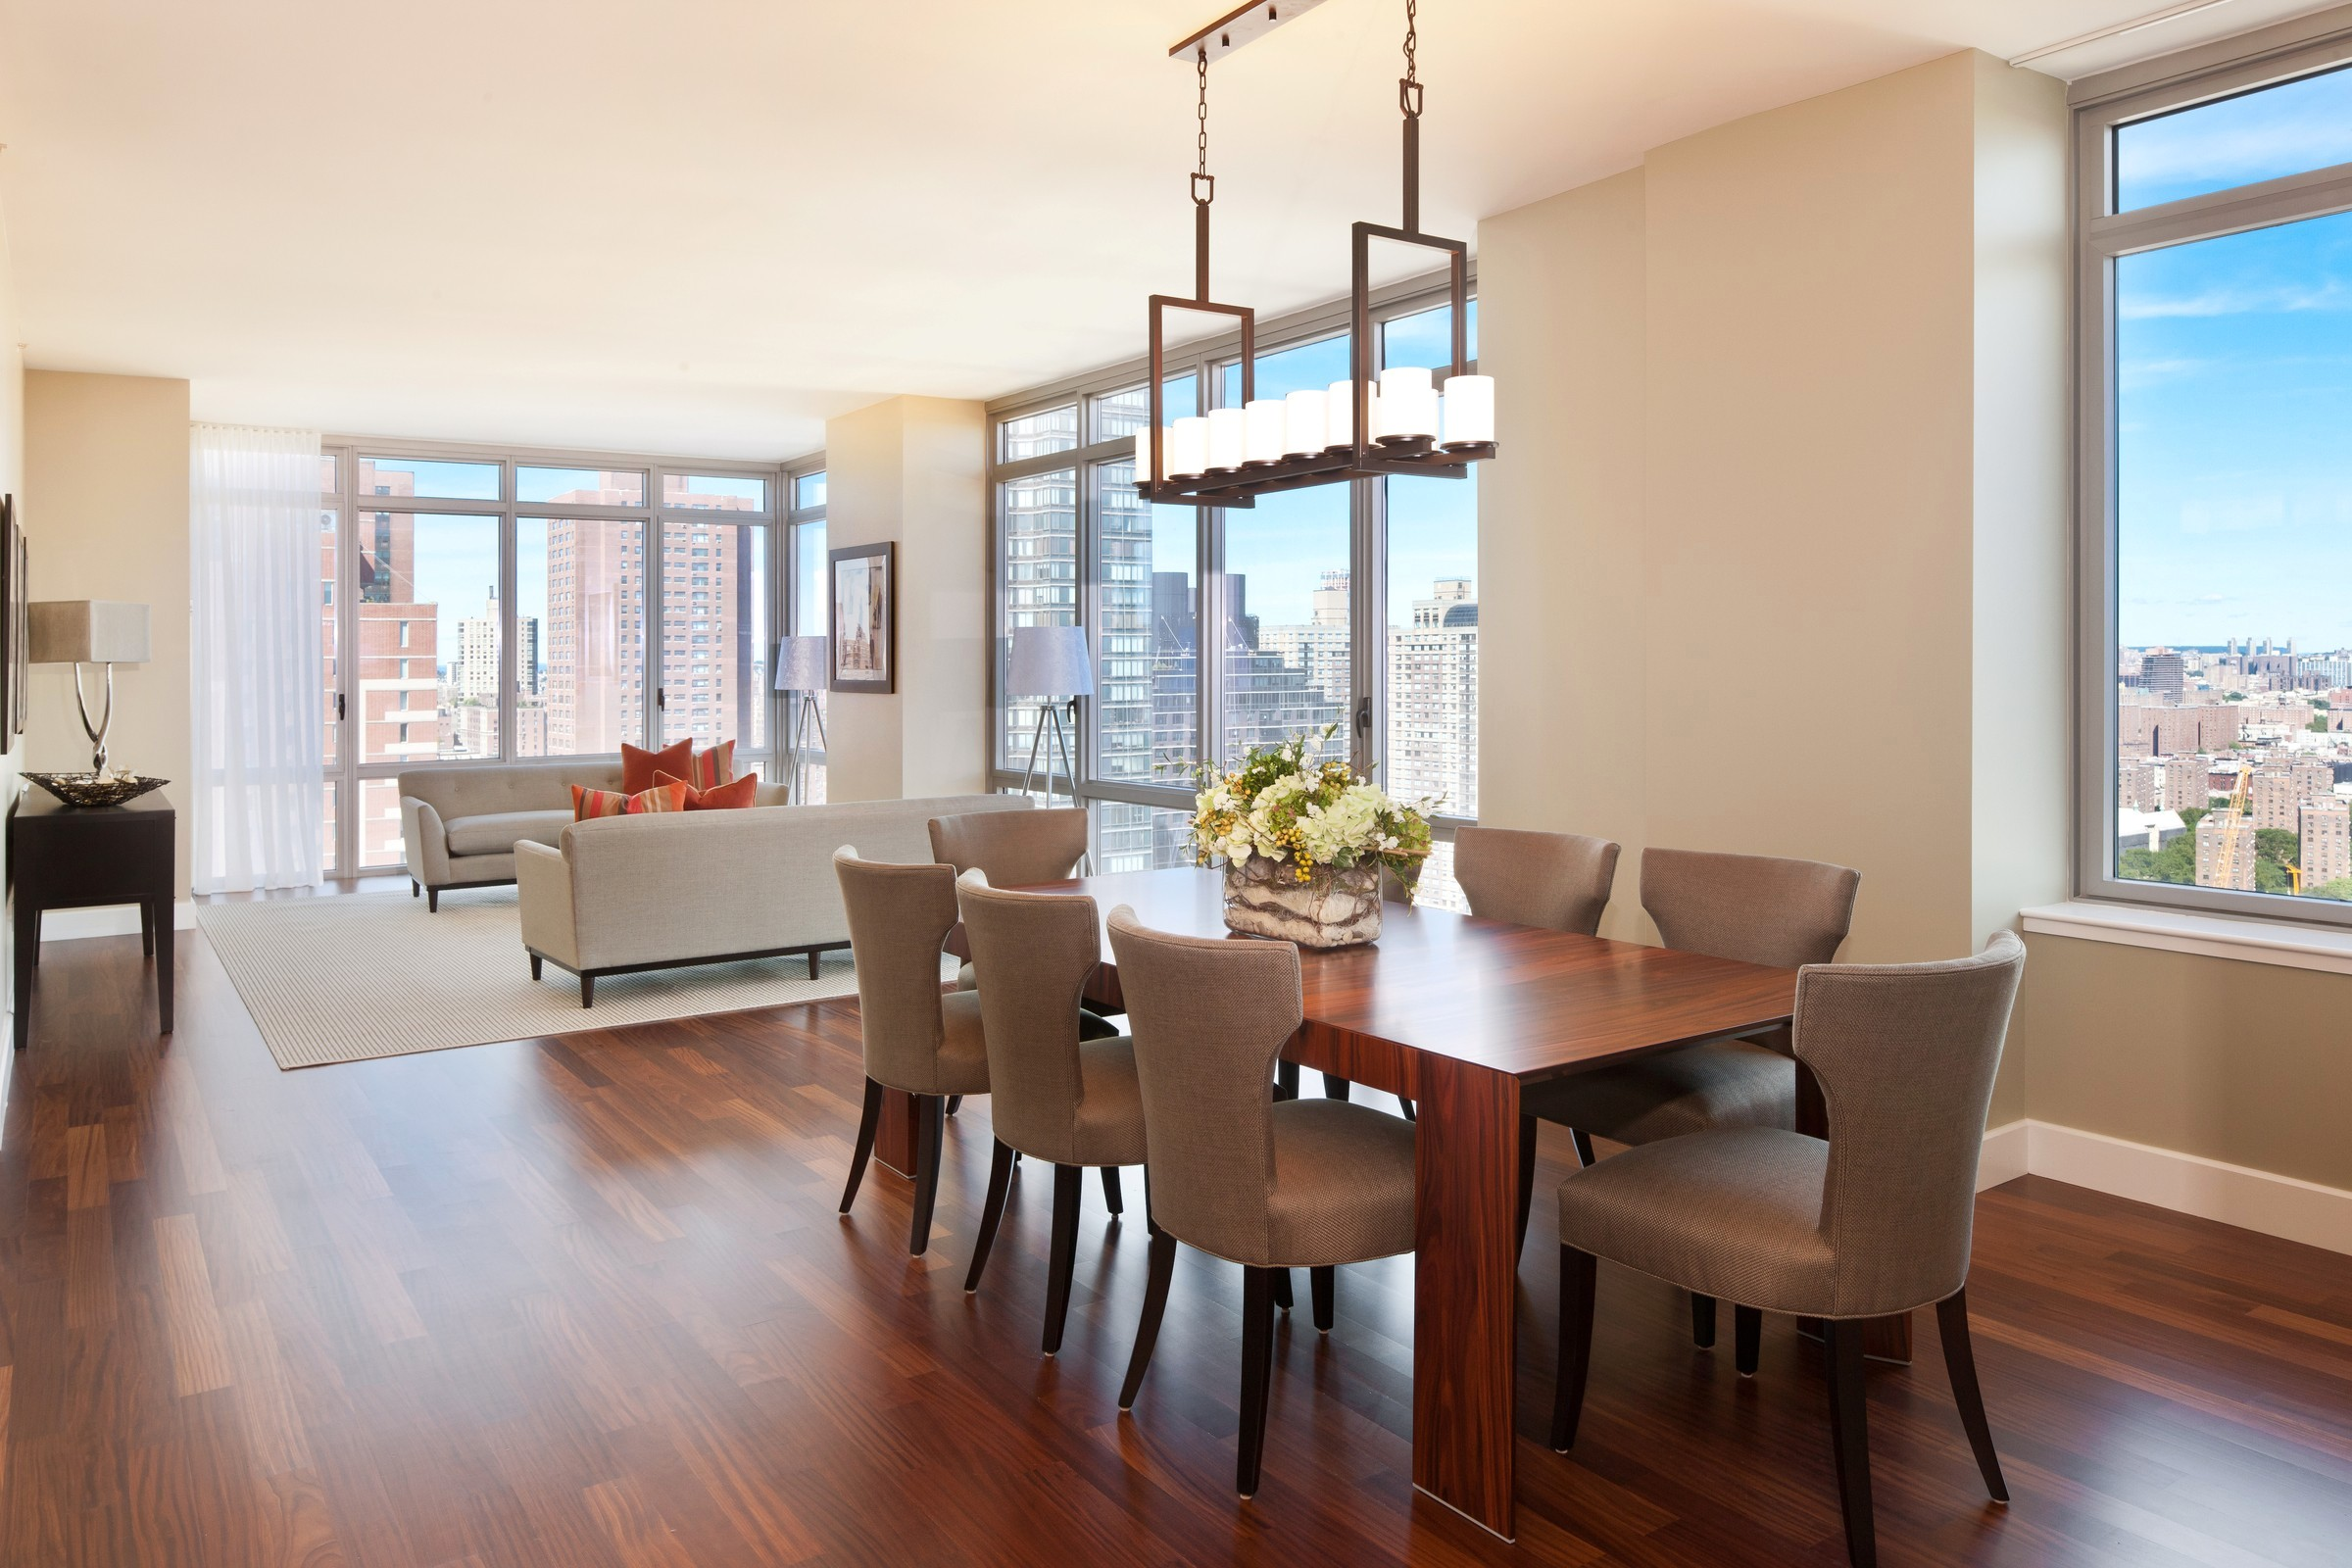 dining room lighting ideas pictures photo - 2